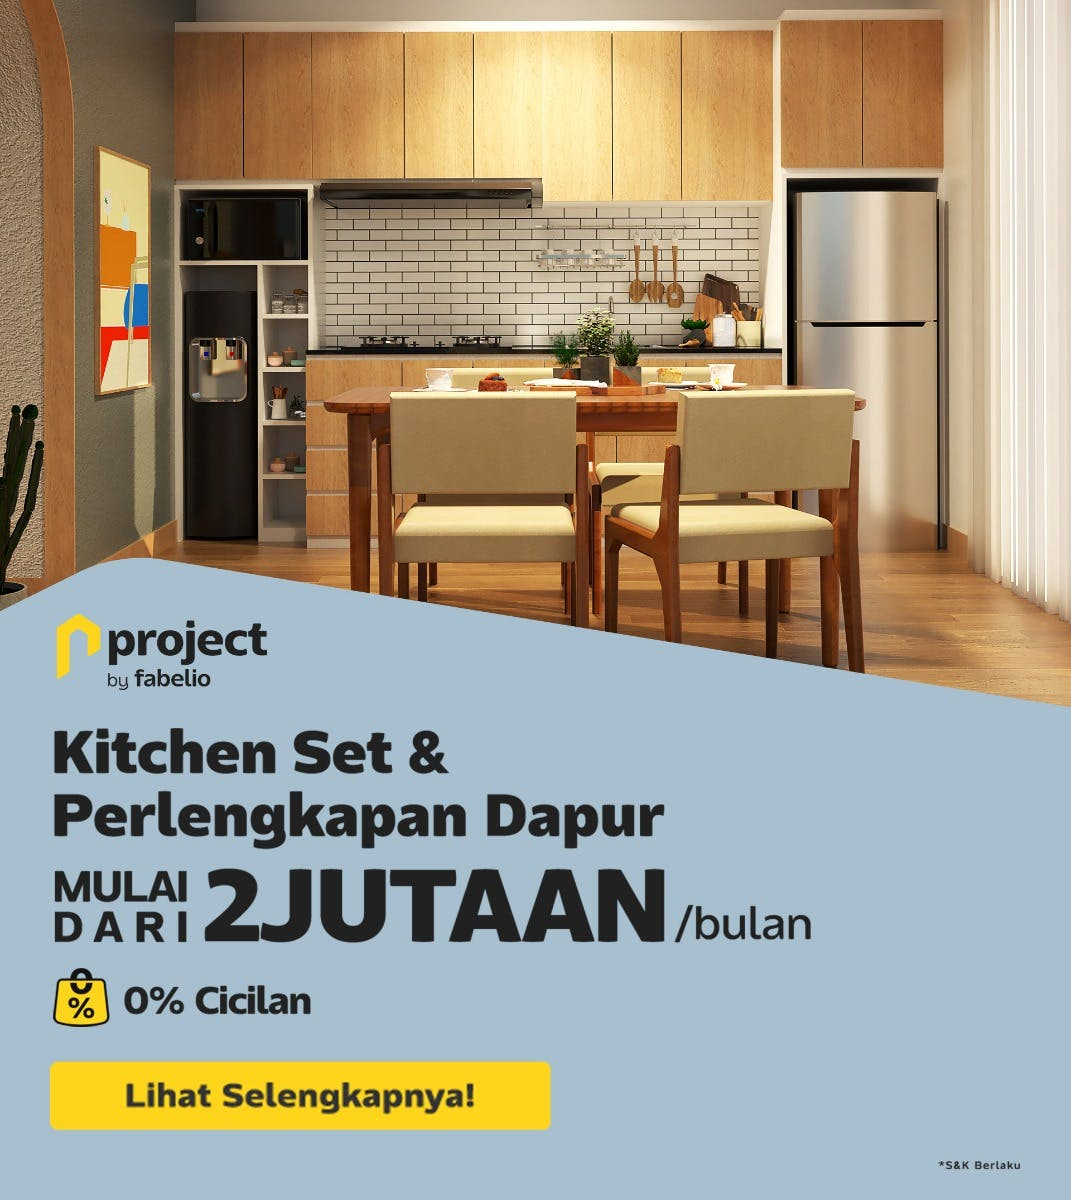 Promo Kitchen Set